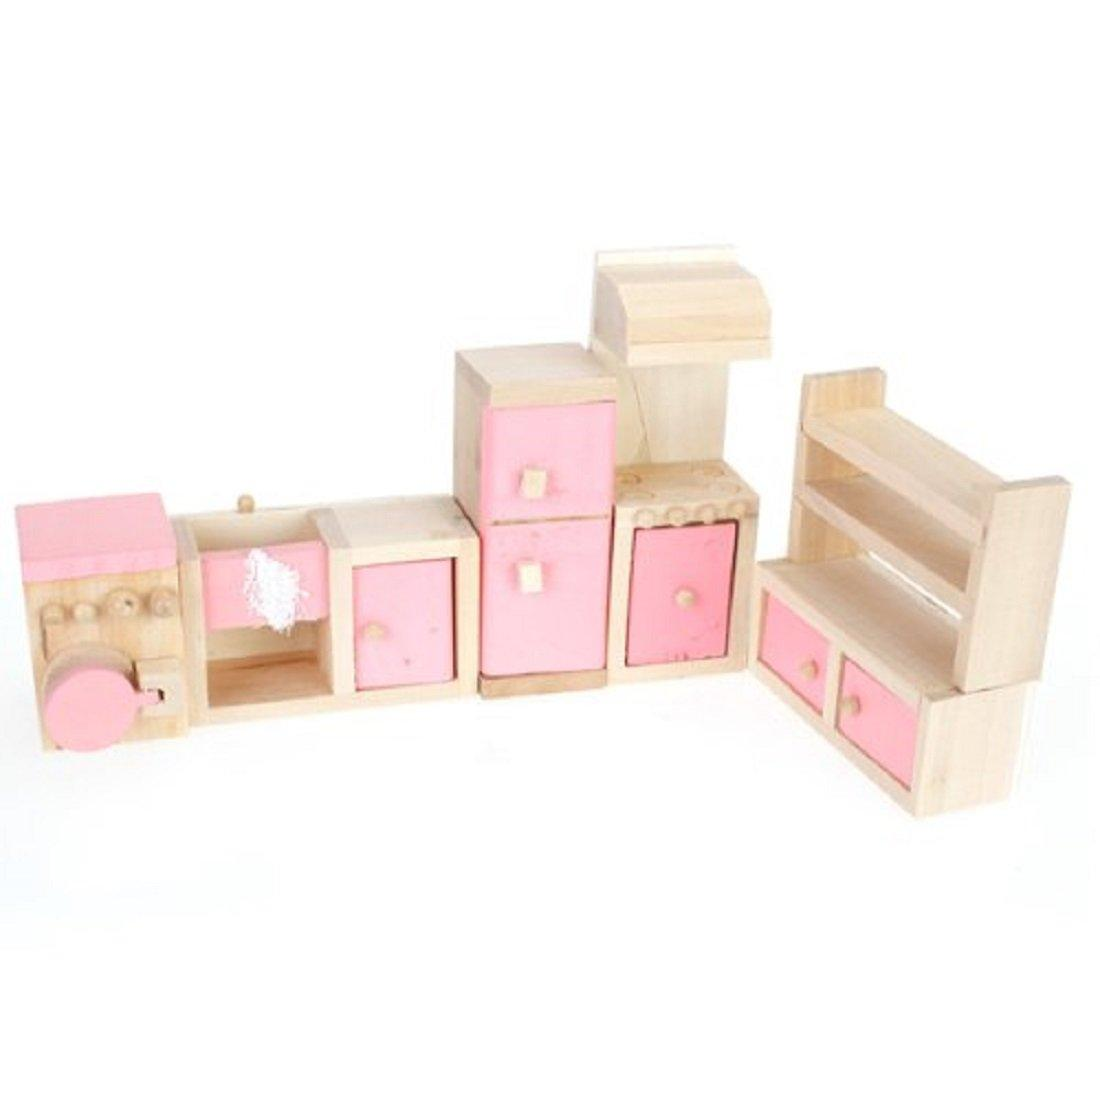 inexpensive dollhouse furniture. Wholesale Pink Children Wooden Doll House Kitchen Furniture Kids Room Inexpensive Dollhouse Figures For Toddlers From Namenew,